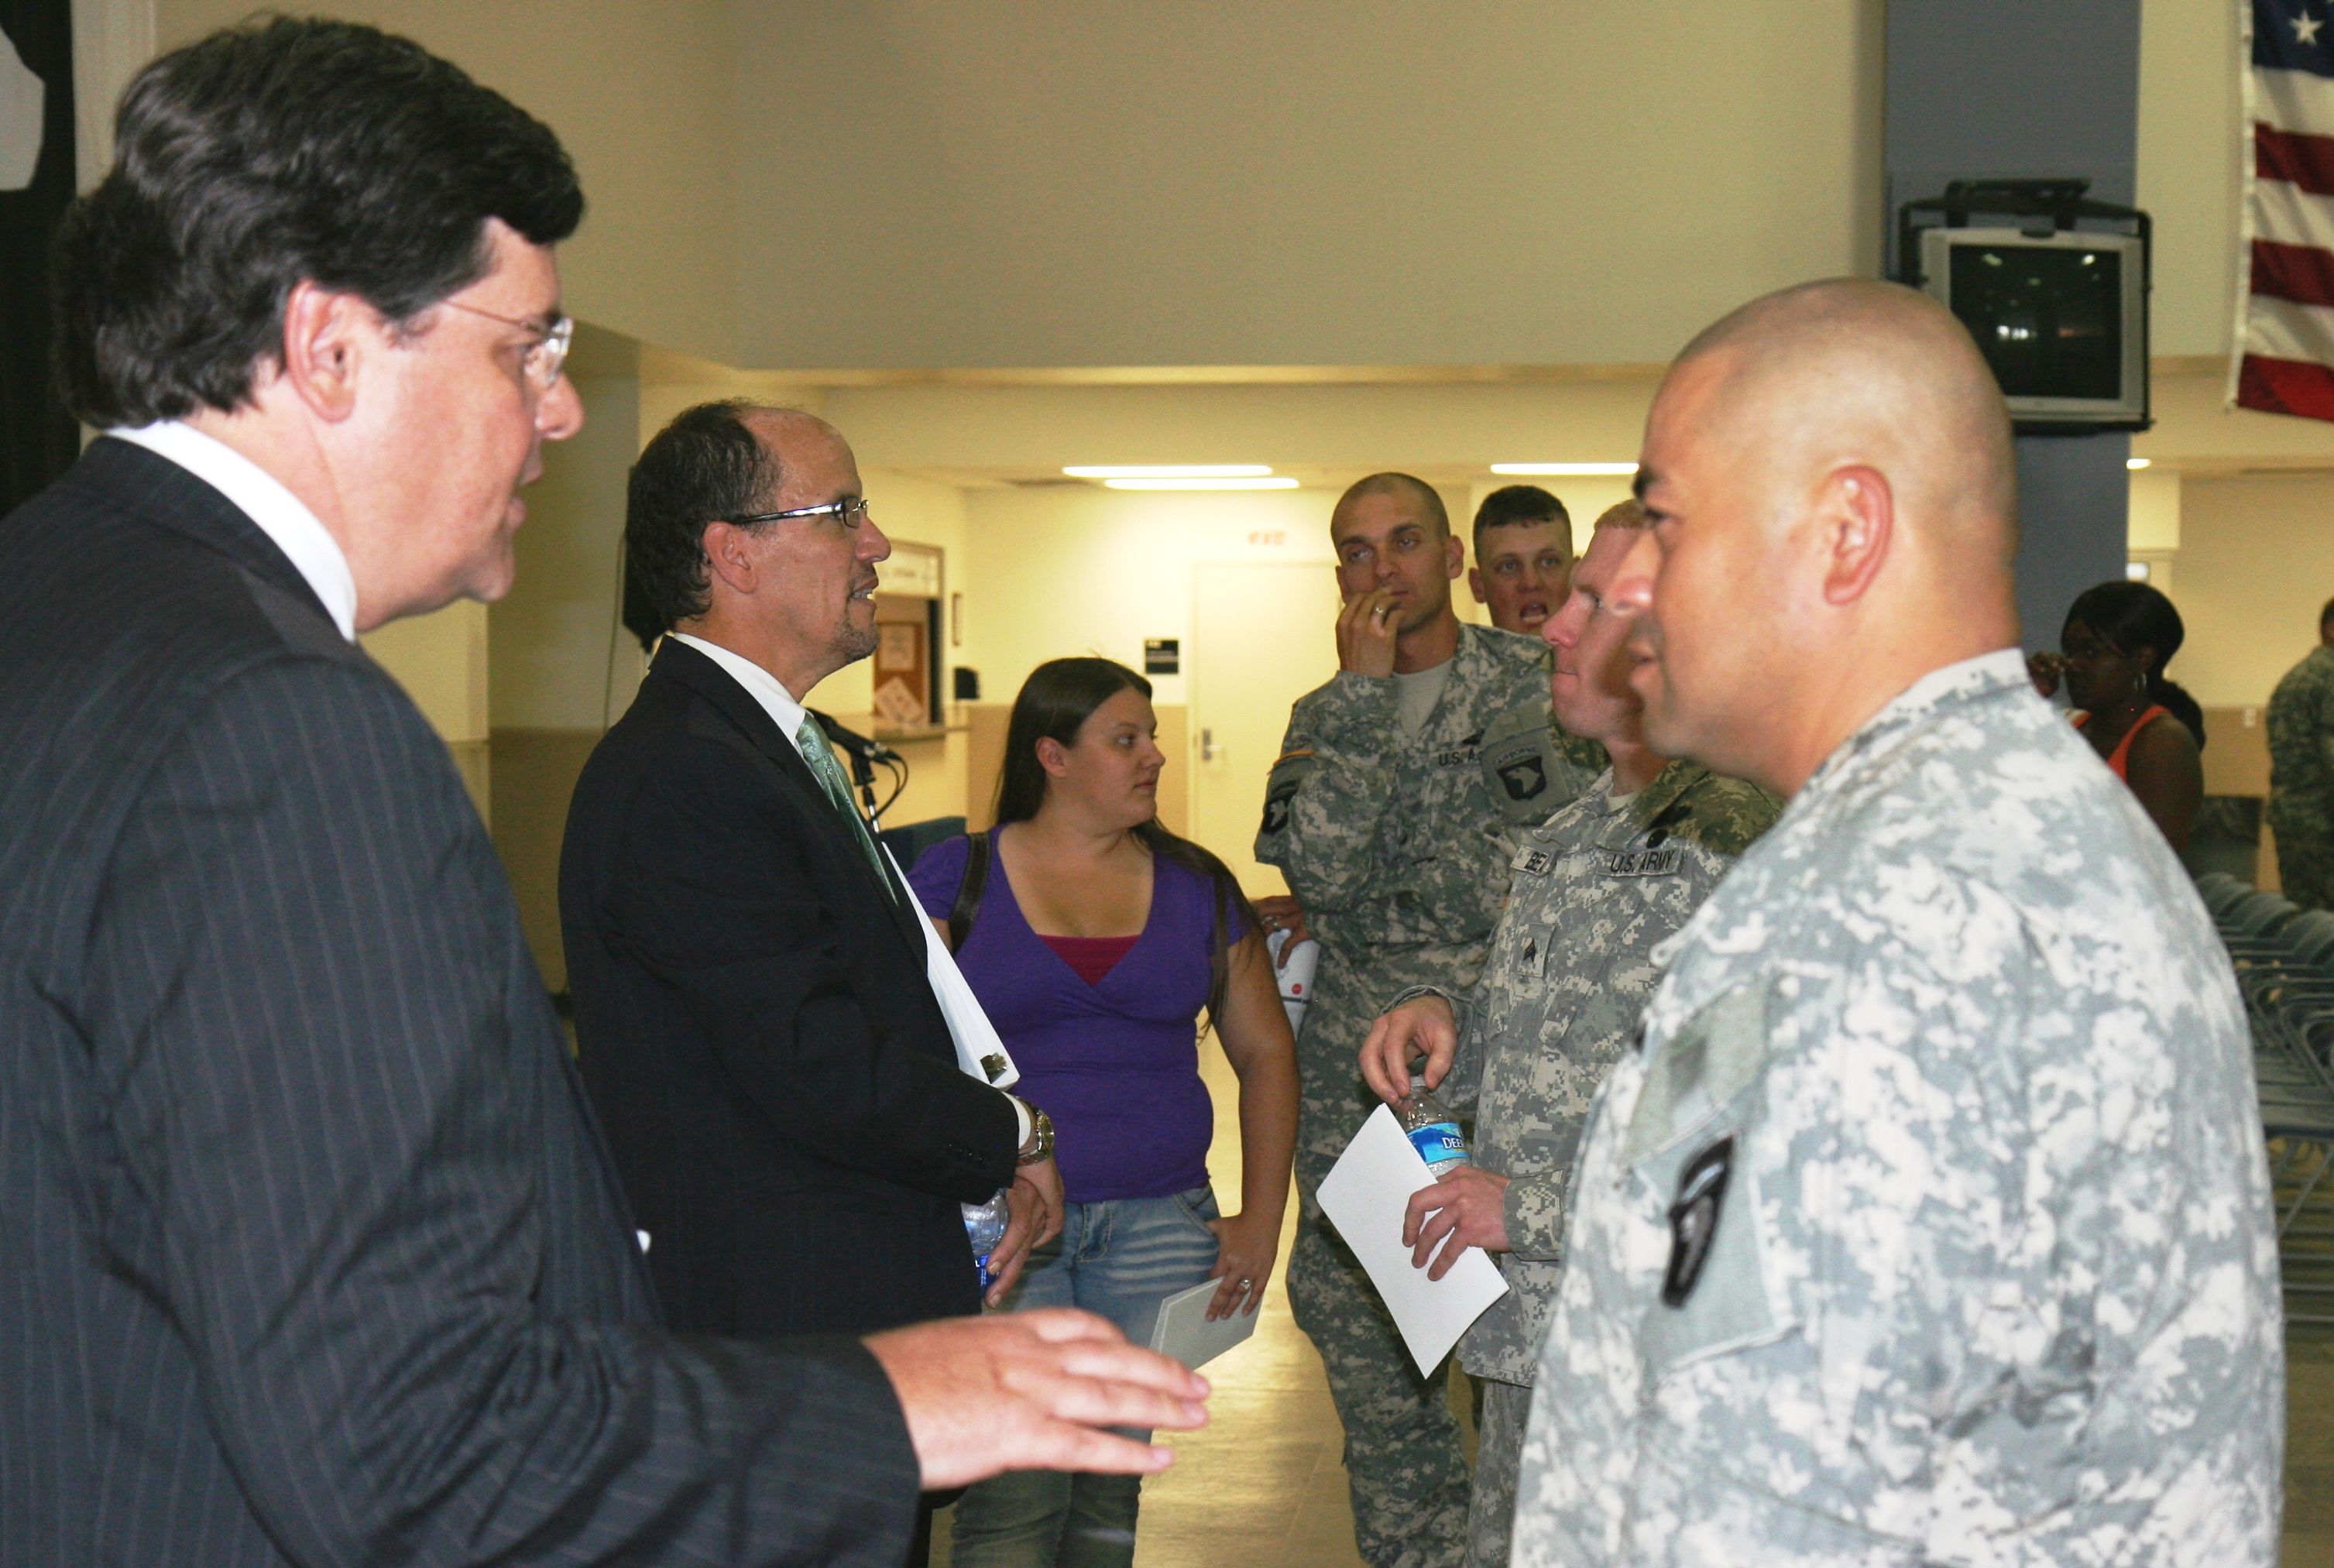 U.S. Attorney David J. Hale and Assistant Attorney General Thomas E. Perez discuss the rights of servicemembers and their families with soldiers stationed at Ft. Campbell Military Installation.